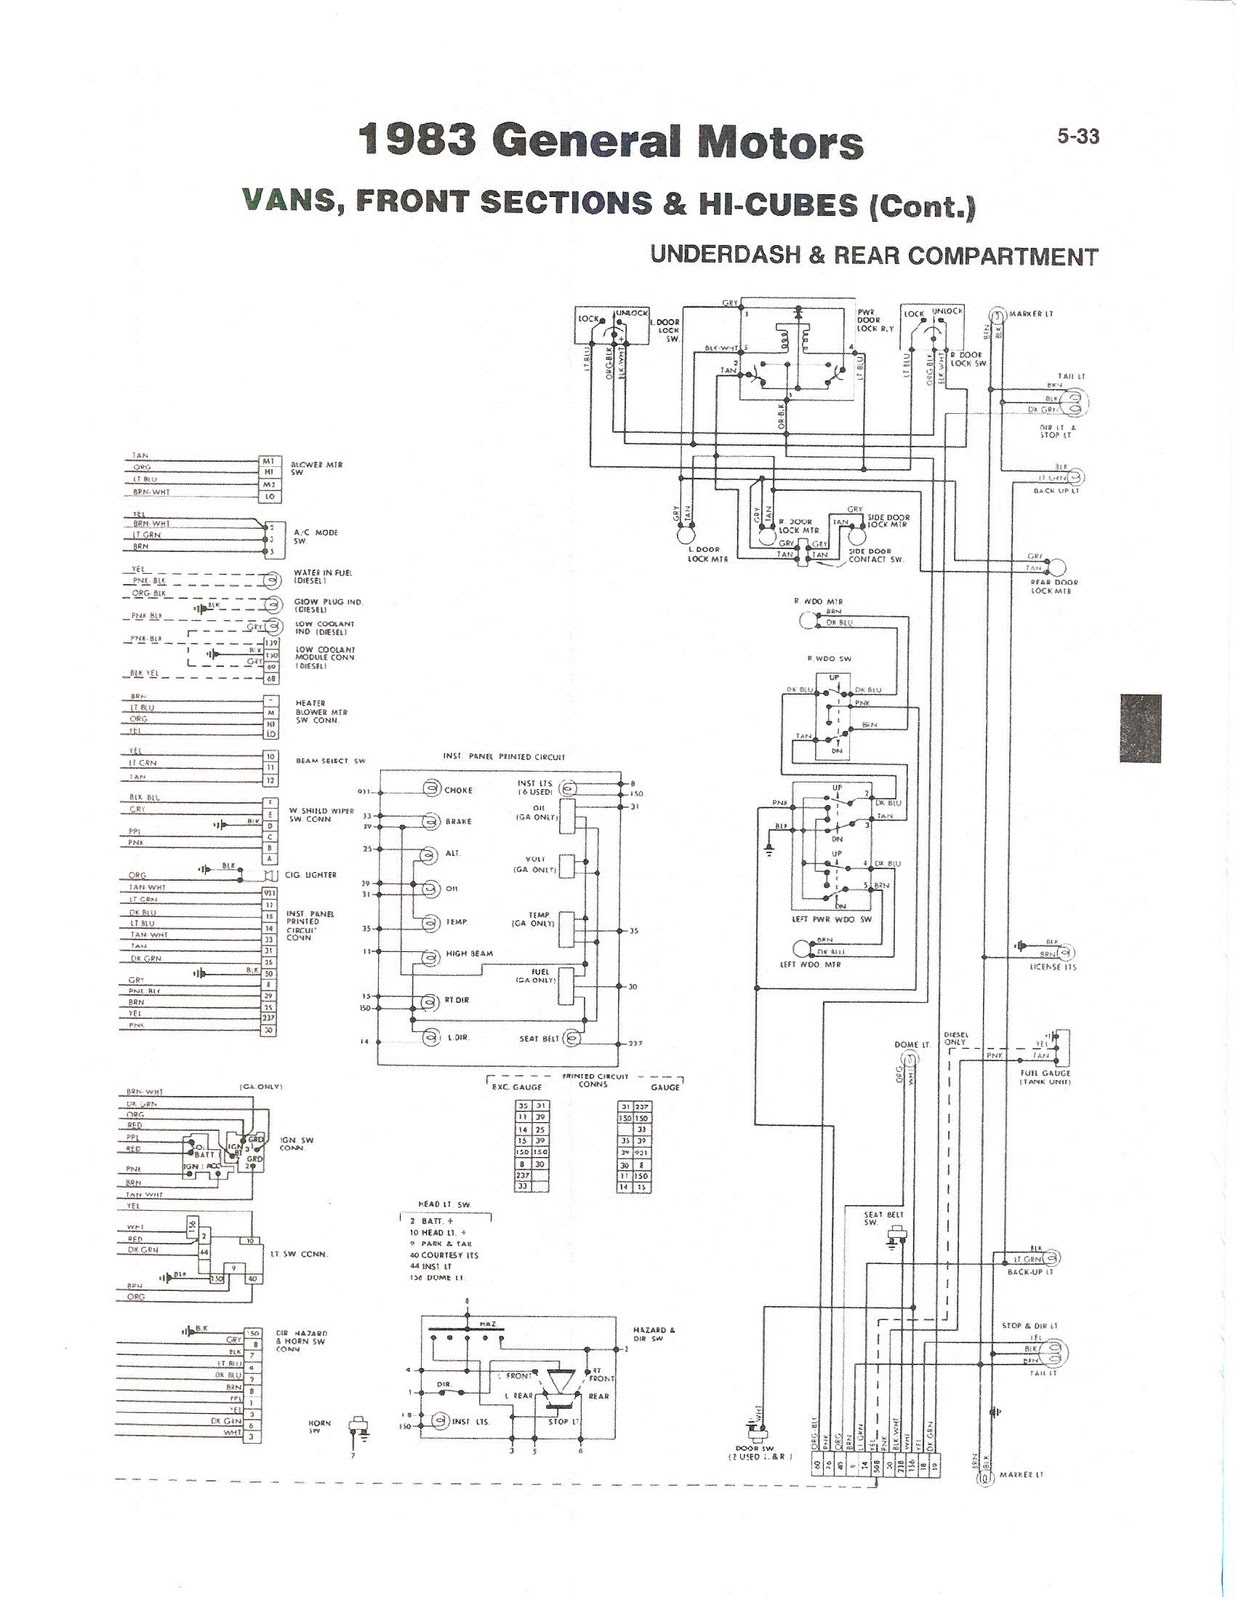 83+GM+Van+front+section+%26+Hi Cubes++underdash+%26+rear+compartment fleetwood rv wiring diagram rv generator wiring diagram \u2022 wiring  at eliteediting.co